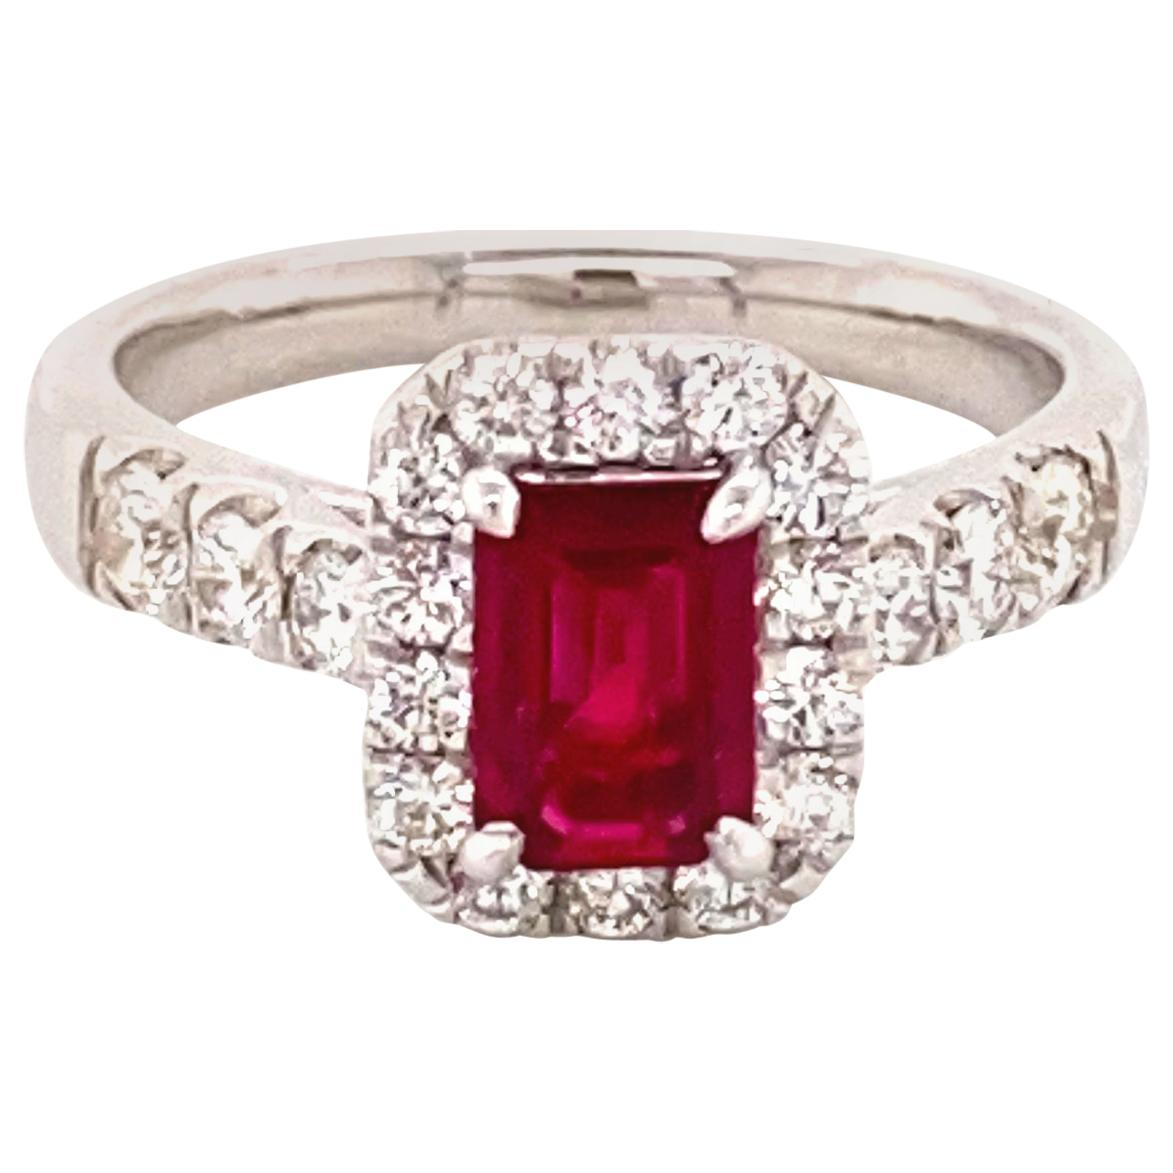 1.28 Carat GRS Certified Pigeon's Blood Burmese Ruby and Diamond Engagement Ring